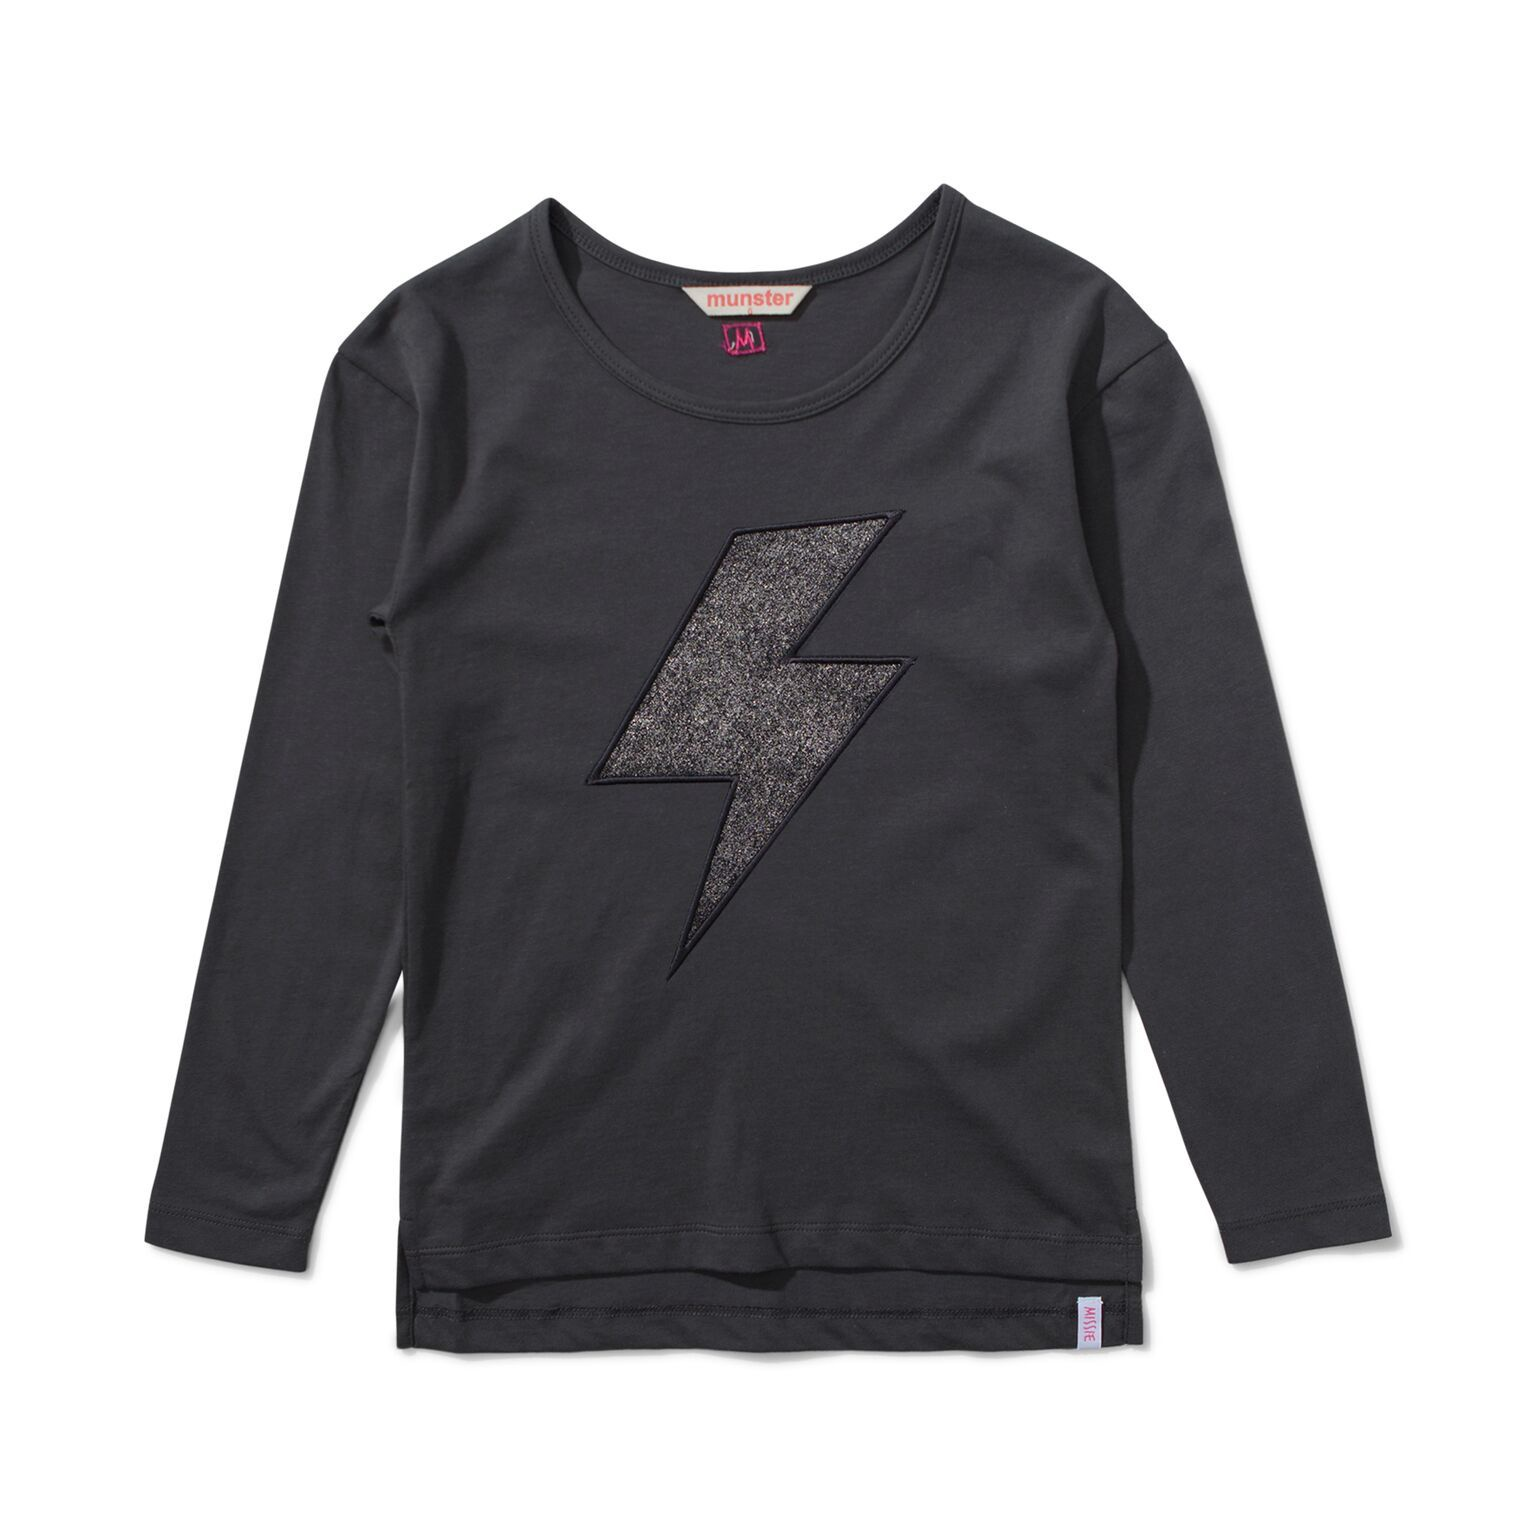 Munster AWAKEN Girls LS Tee